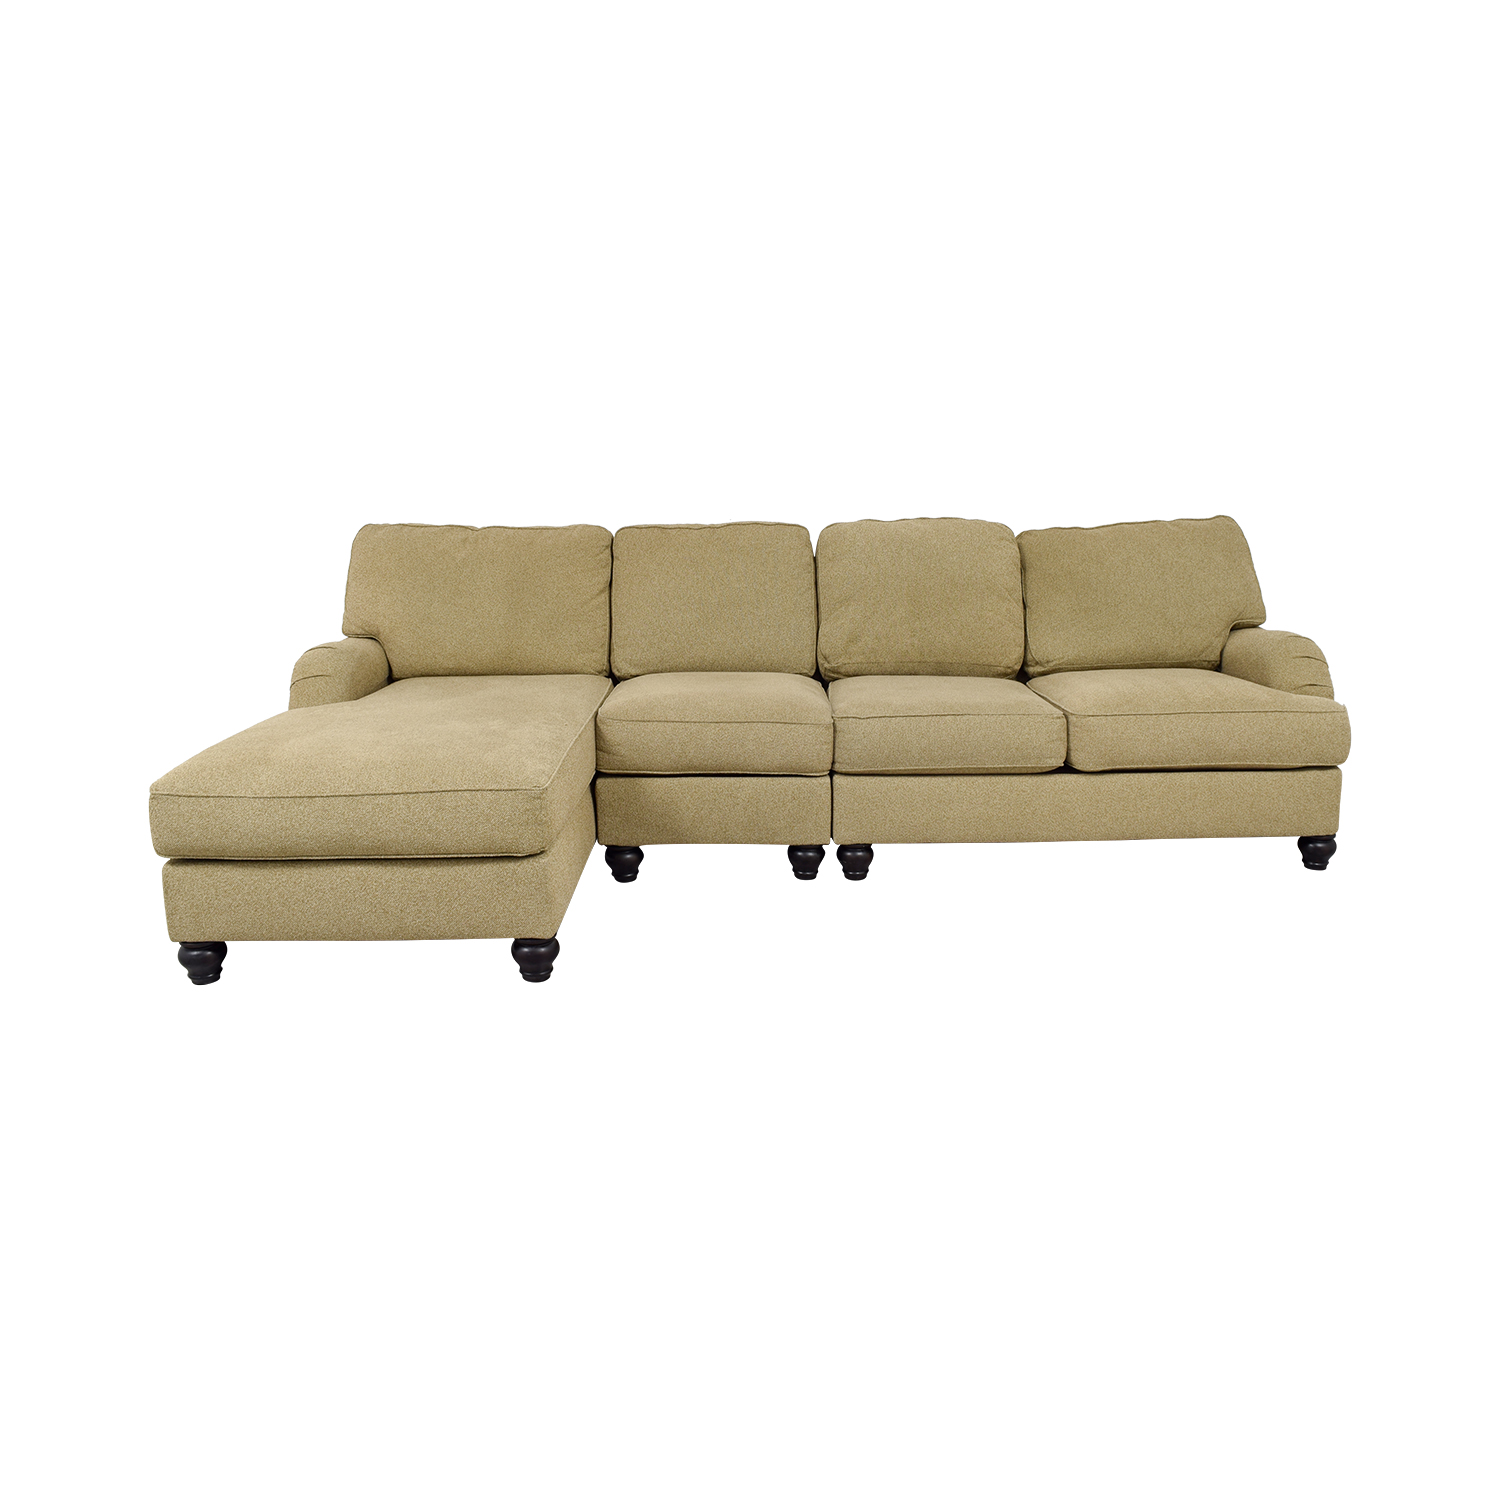 Ashley's Furniture Ashley's Furniture Tan Sectional Sofa Sofas